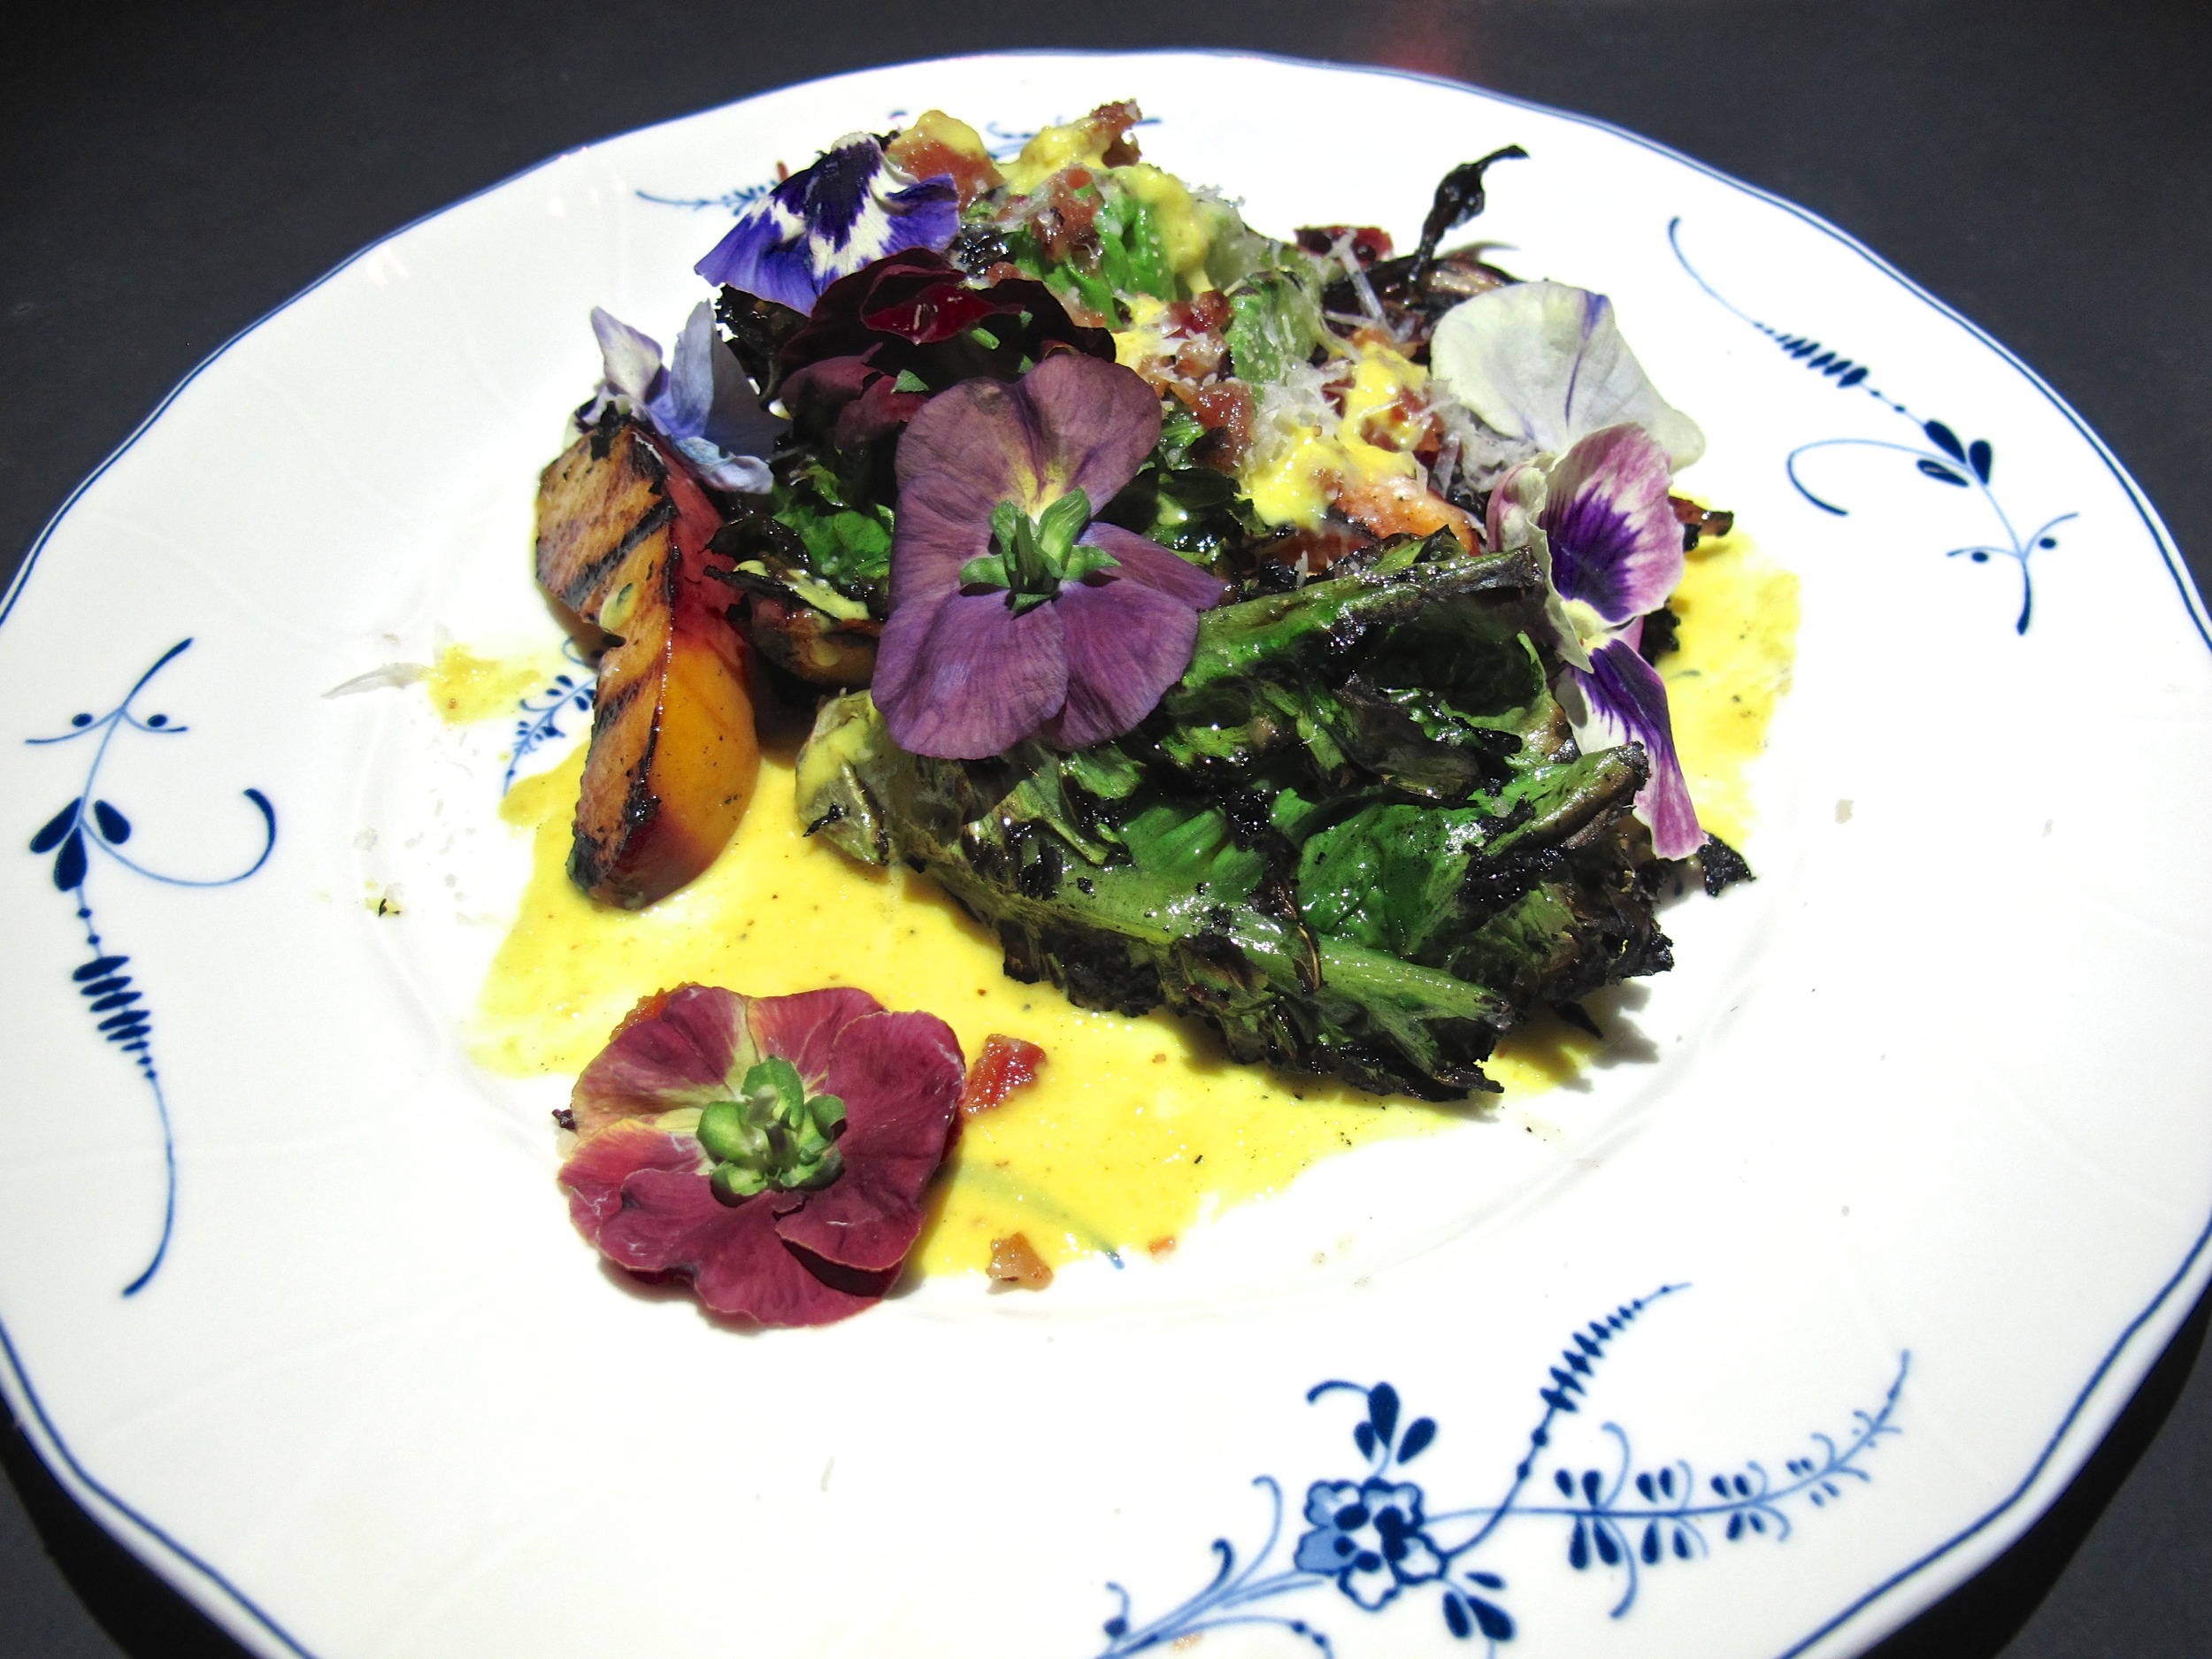 Commissary Line Hotel grilled greens